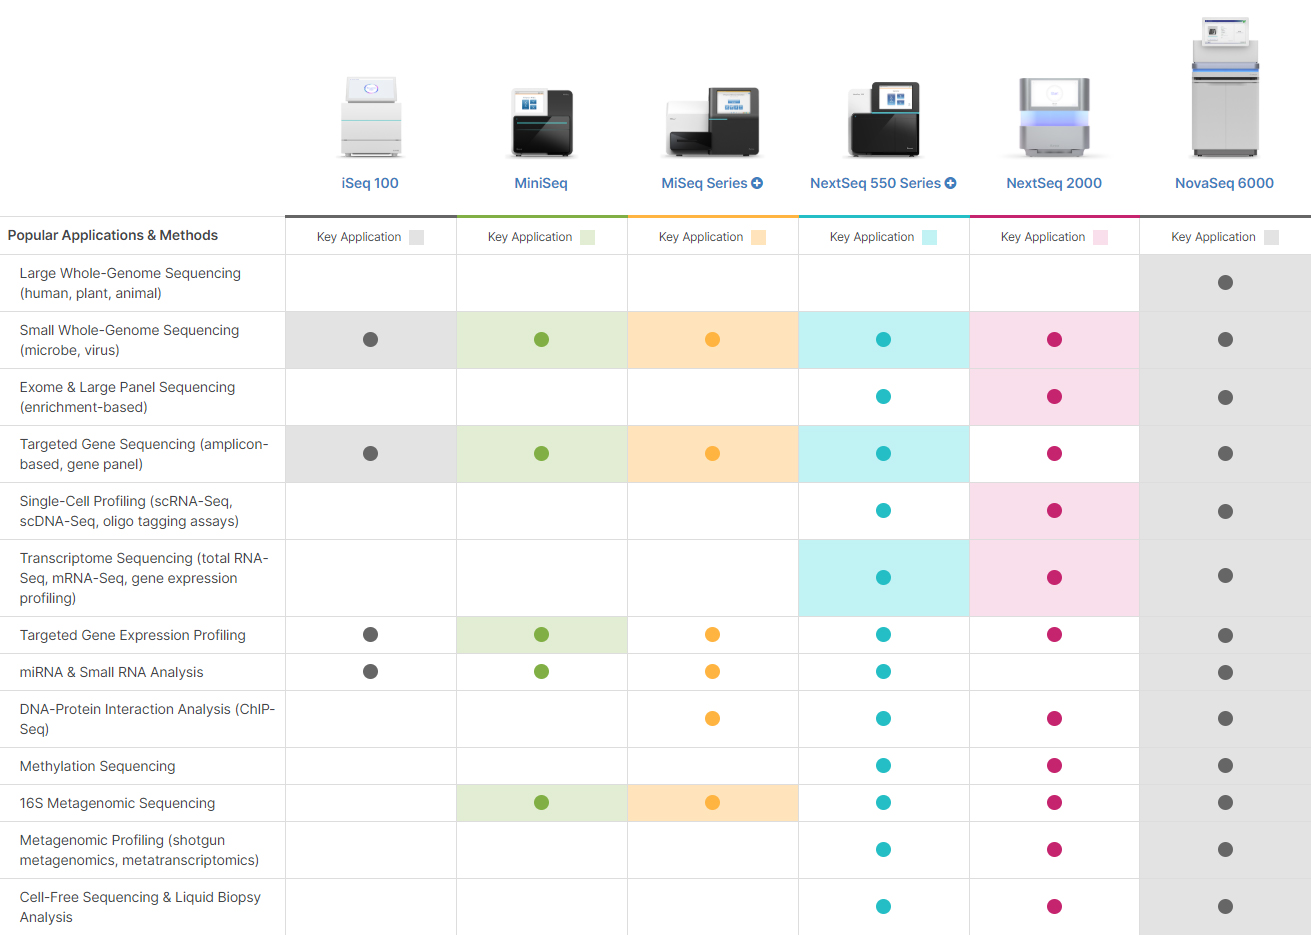 Illumina sequencing platforms